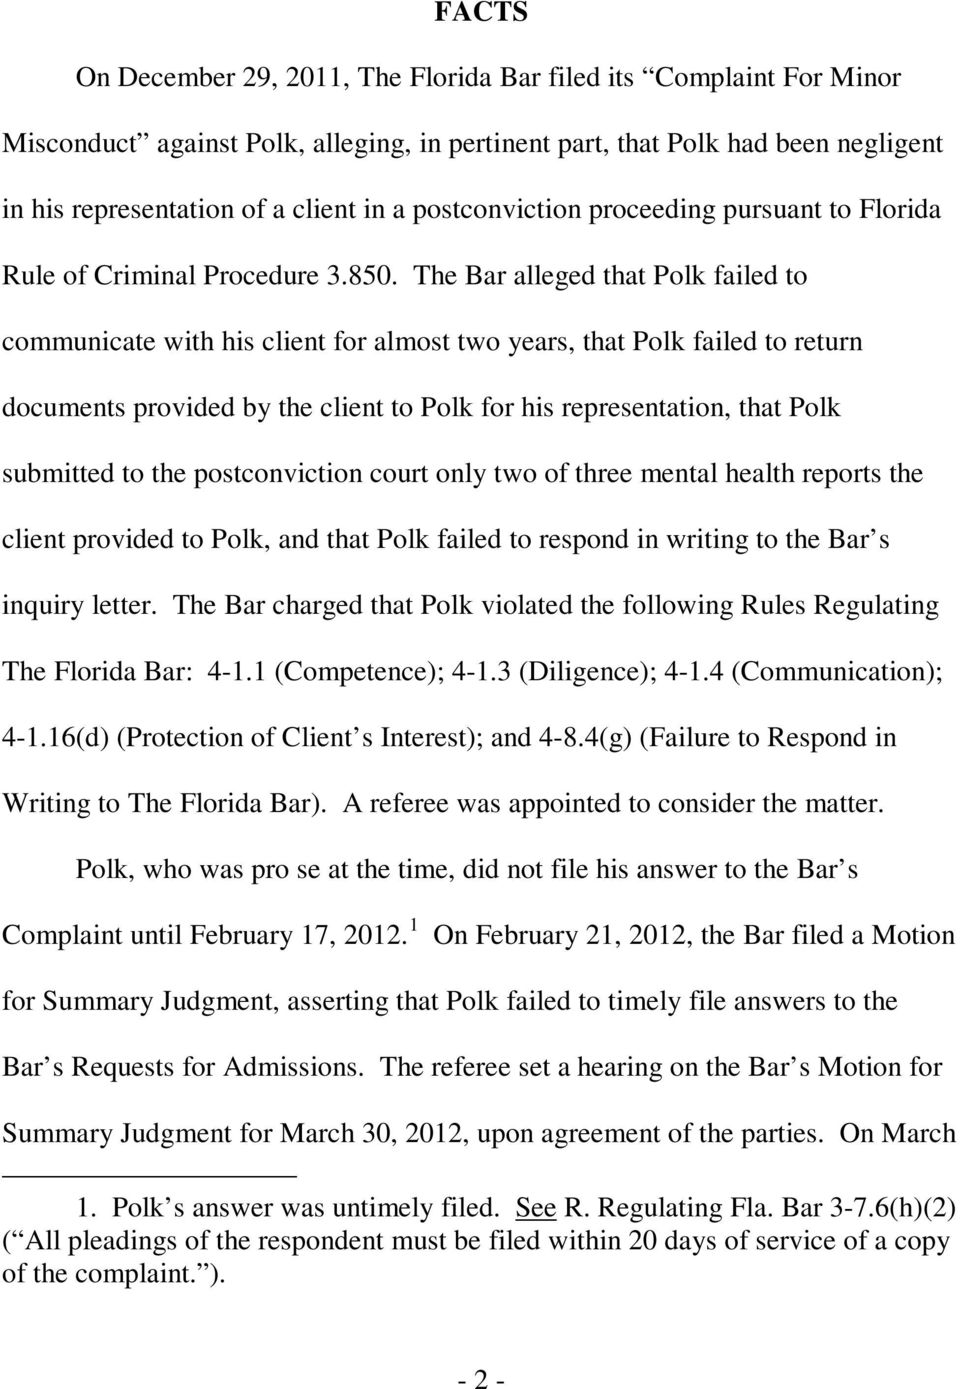 The Bar alleged that Polk failed to communicate with his client for almost two years, that Polk failed to return documents provided by the client to Polk for his representation, that Polk submitted